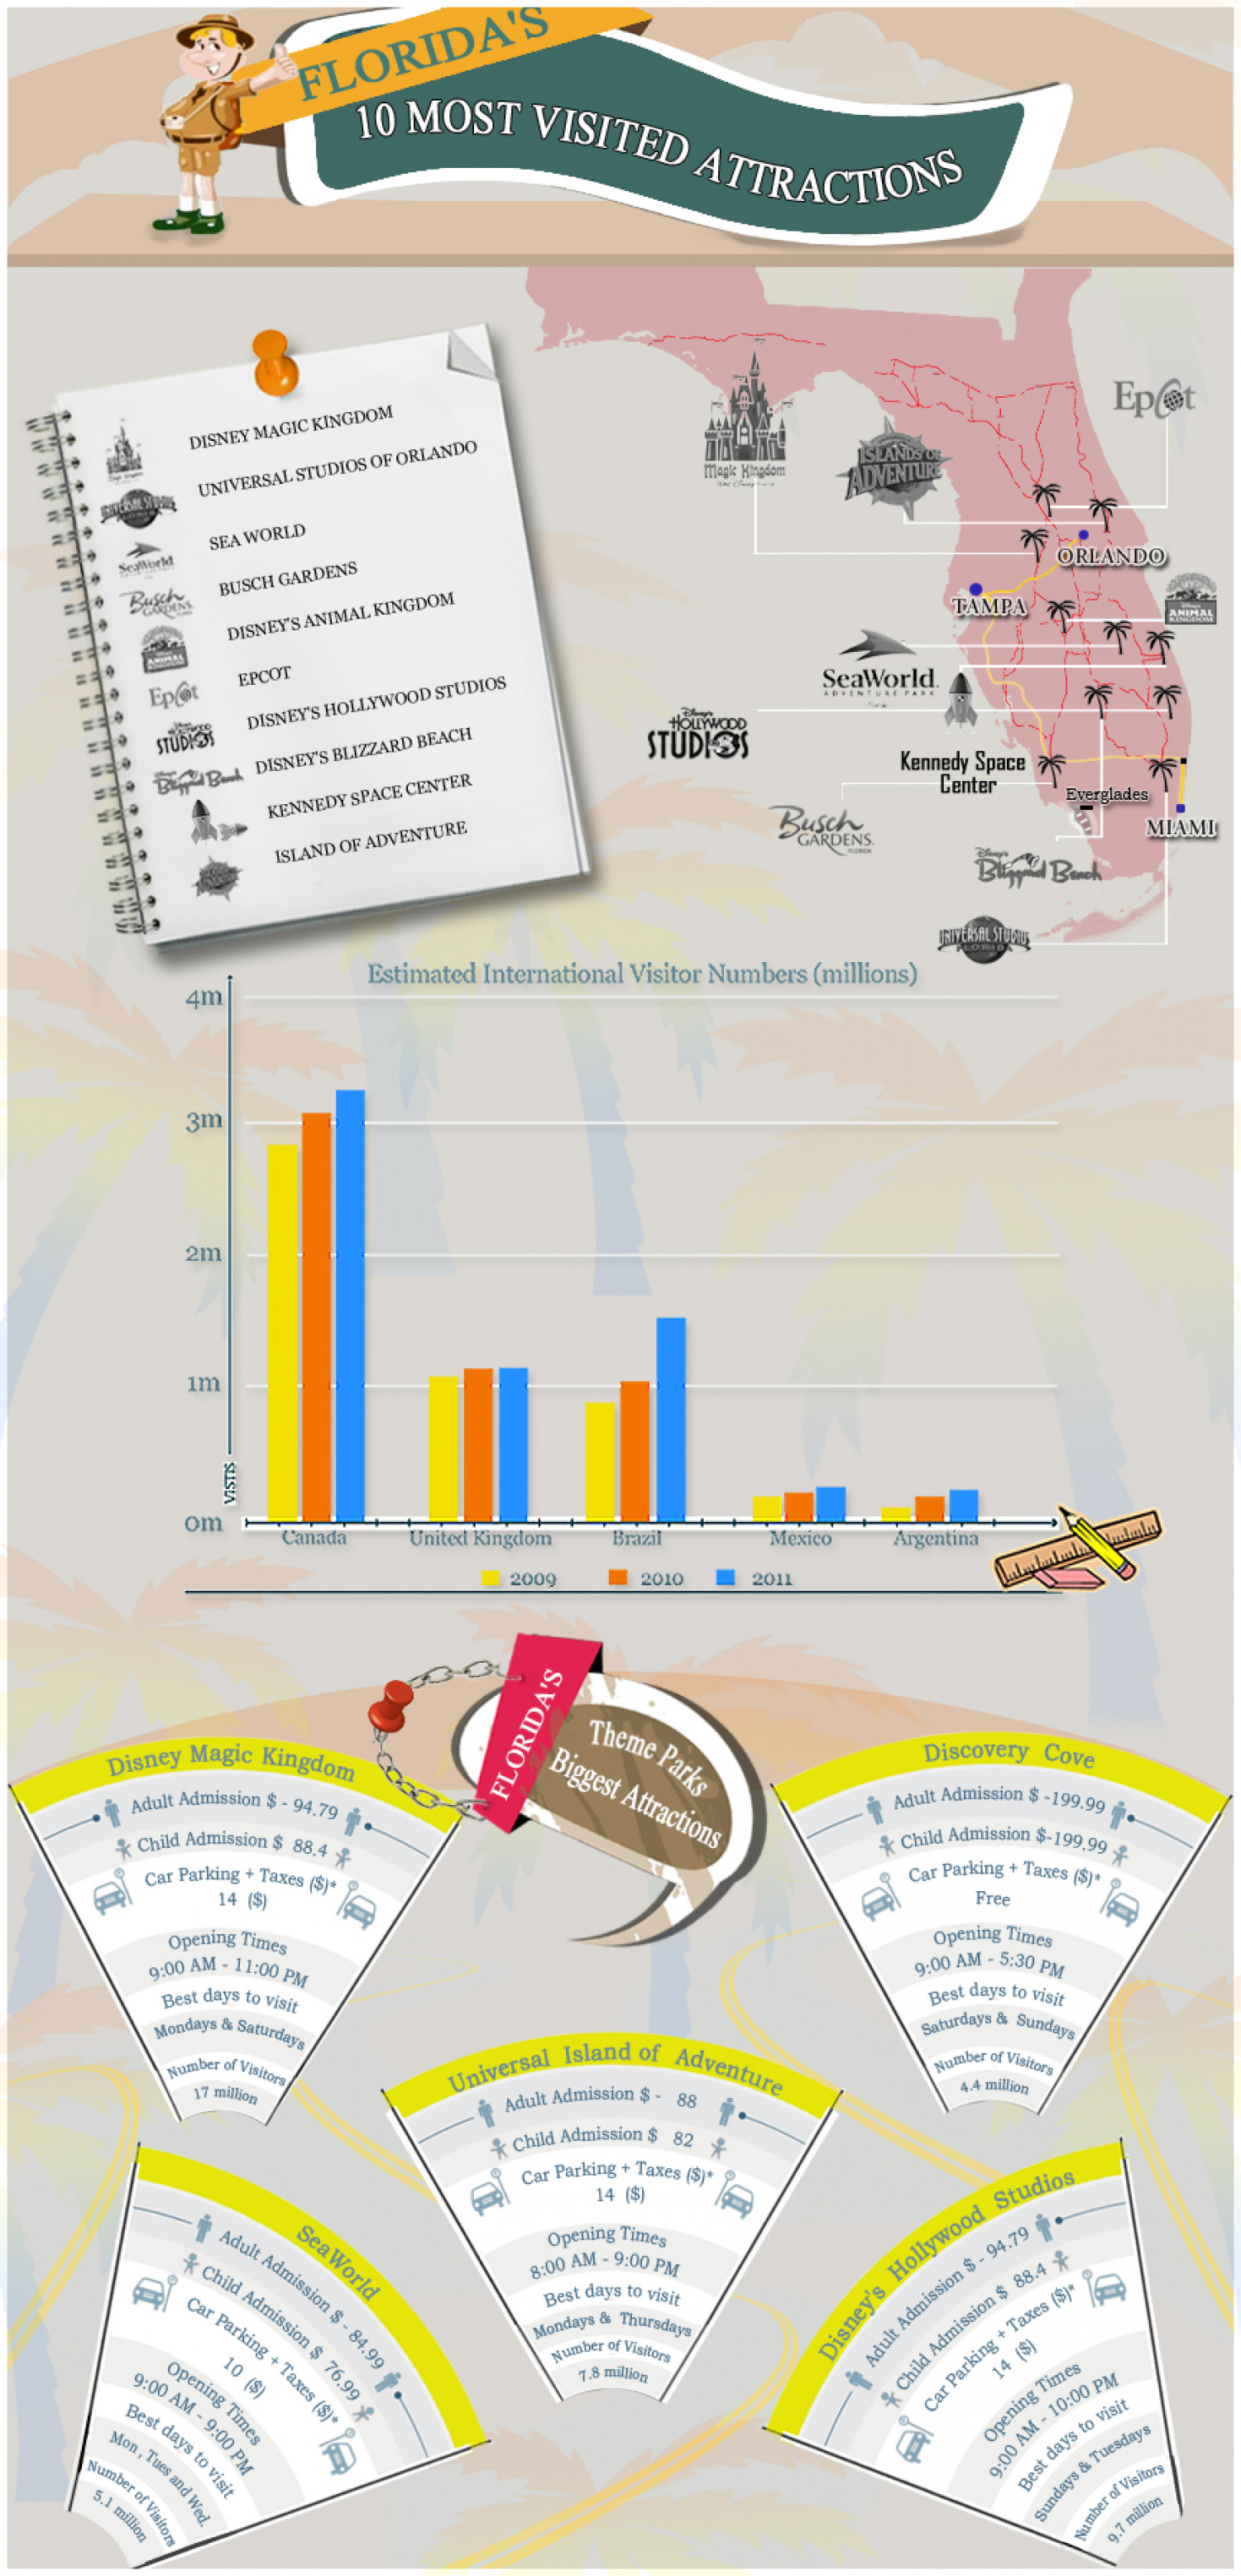 Florida's 10 Most Visited Attractions Infographic